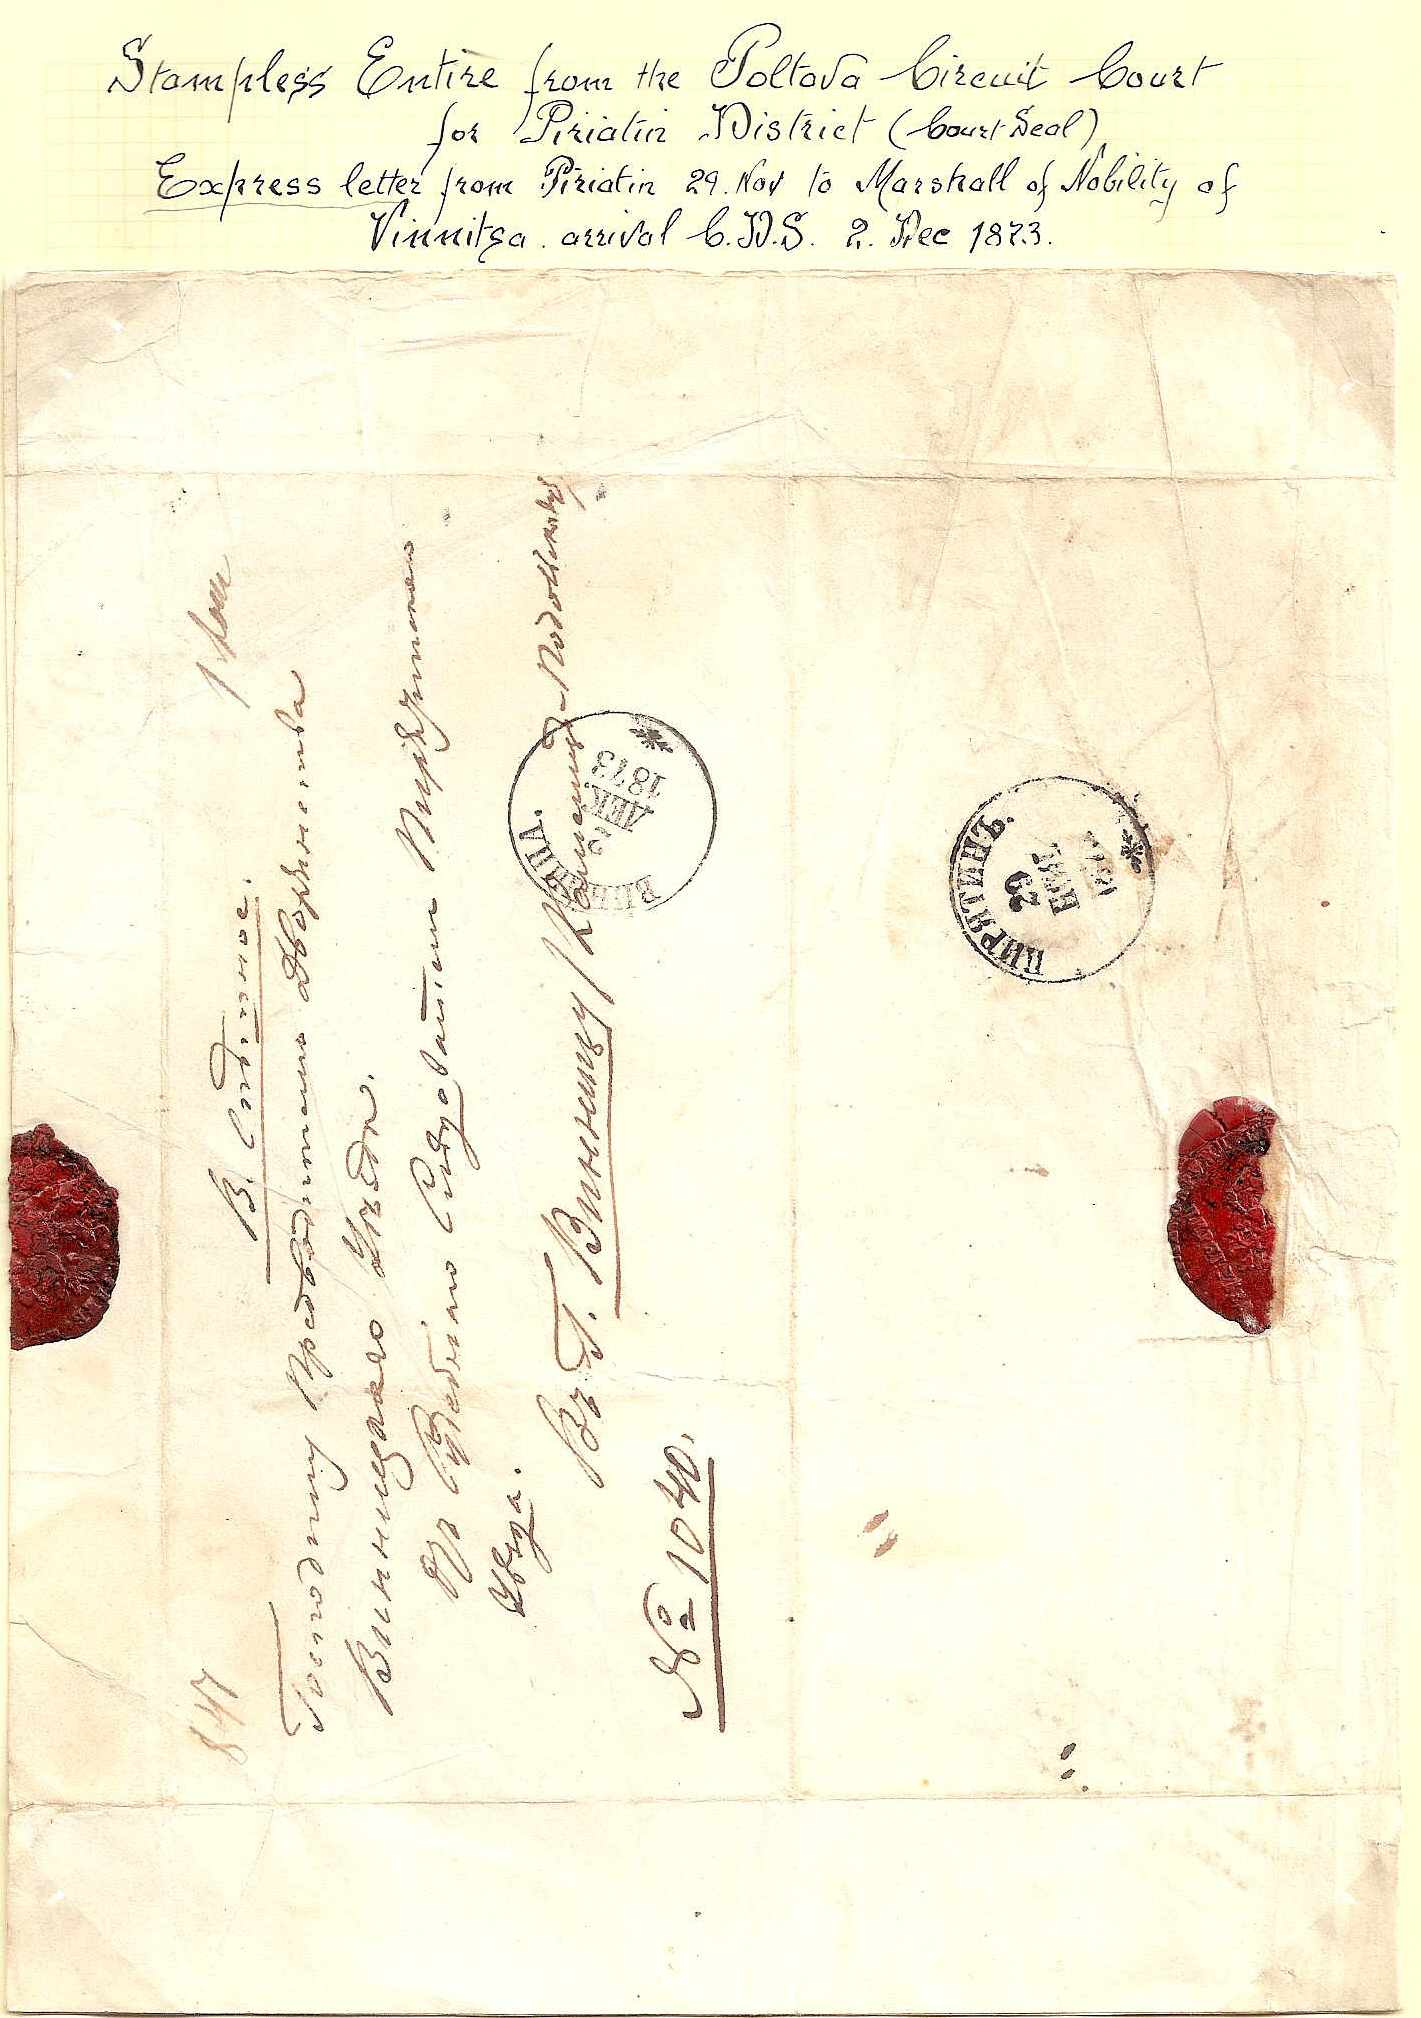 Russia Postal History - Stampless Covers Piriatin Scott 2671873